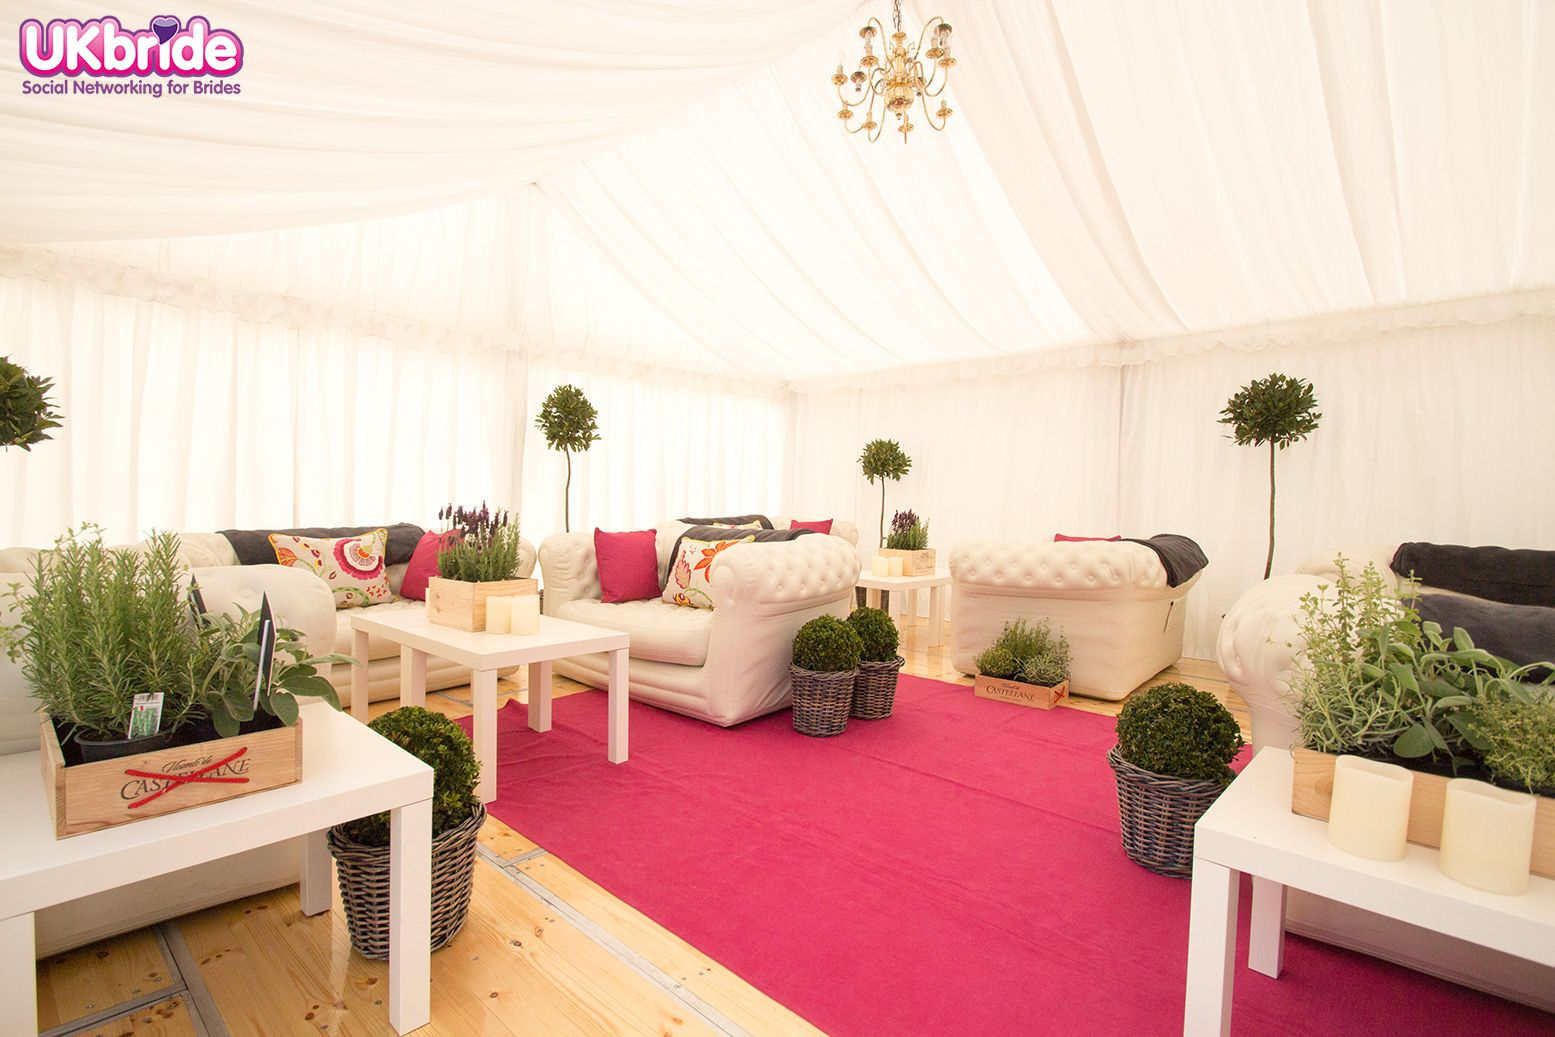 Inflatable sofas for your venue for just 60 to hire by get searching for your wedding dress ukbride is a fantastic website to help you with your big day junglespirit Gallery